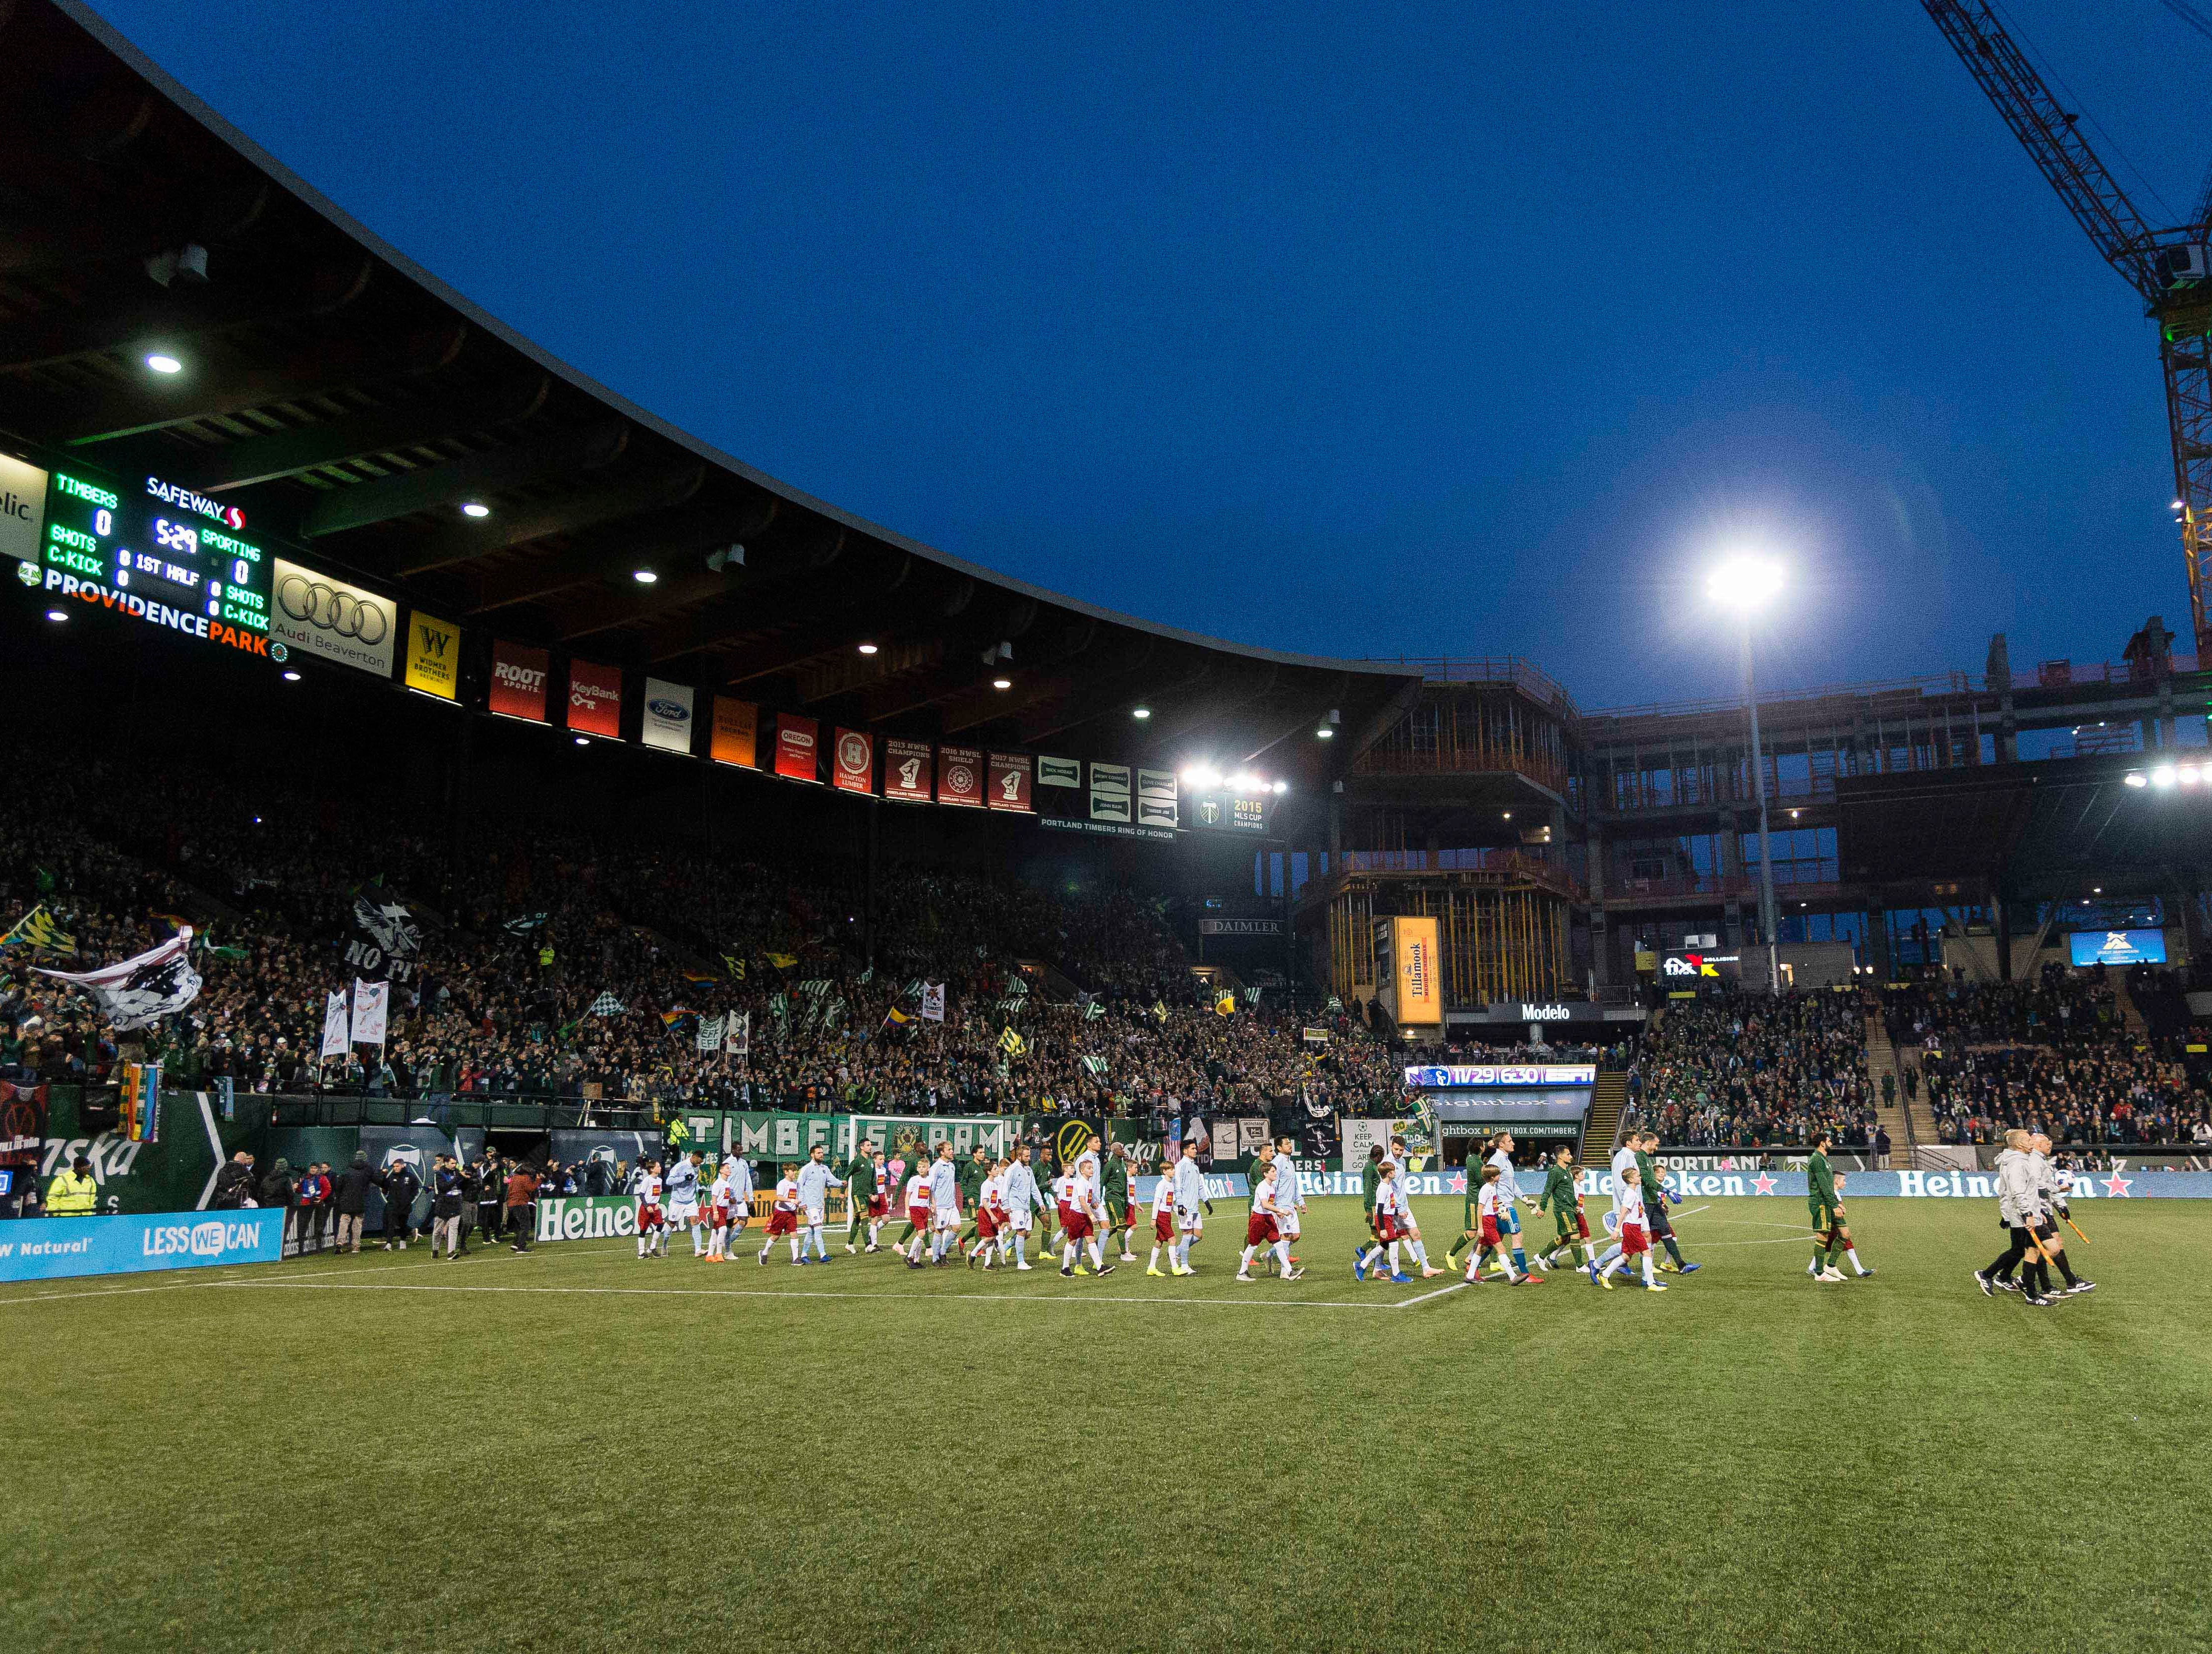 Nov 25, 2018; Portland, OR, USA; Sporting Kansas City and the Portland Timbers take the field before the start of the first leg of the MLS Western Conference Championship at Providence Park. The game ended tied 0-0. Mandatory Credit: Troy Wayrynen-USA TODAY Sports